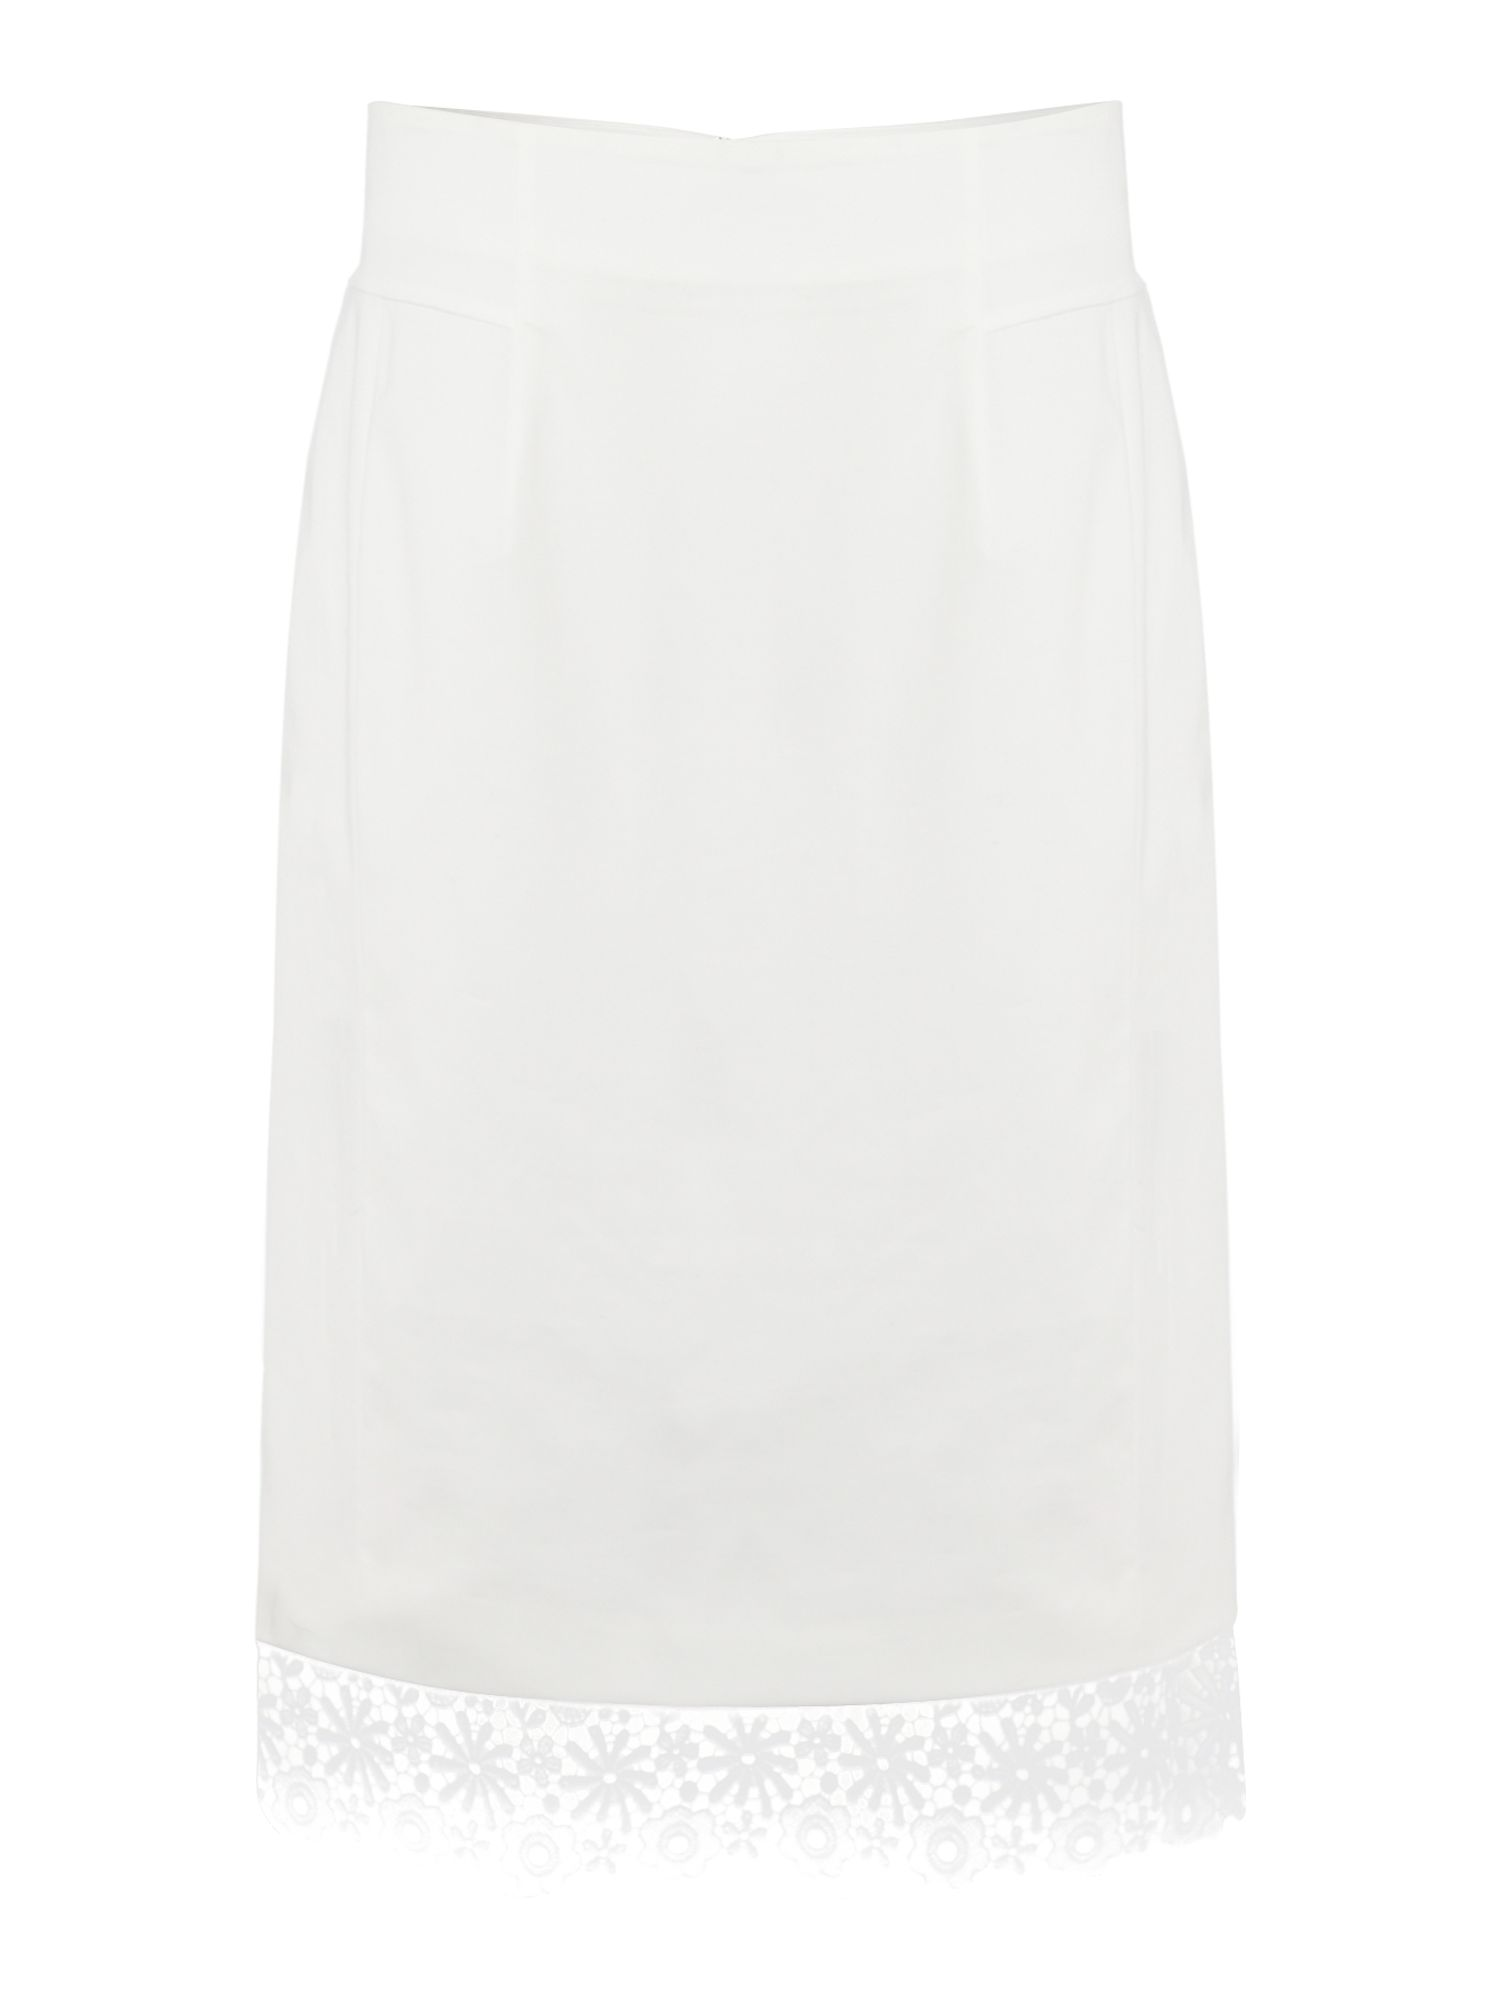 Ciocca below the knee lace trim skirt